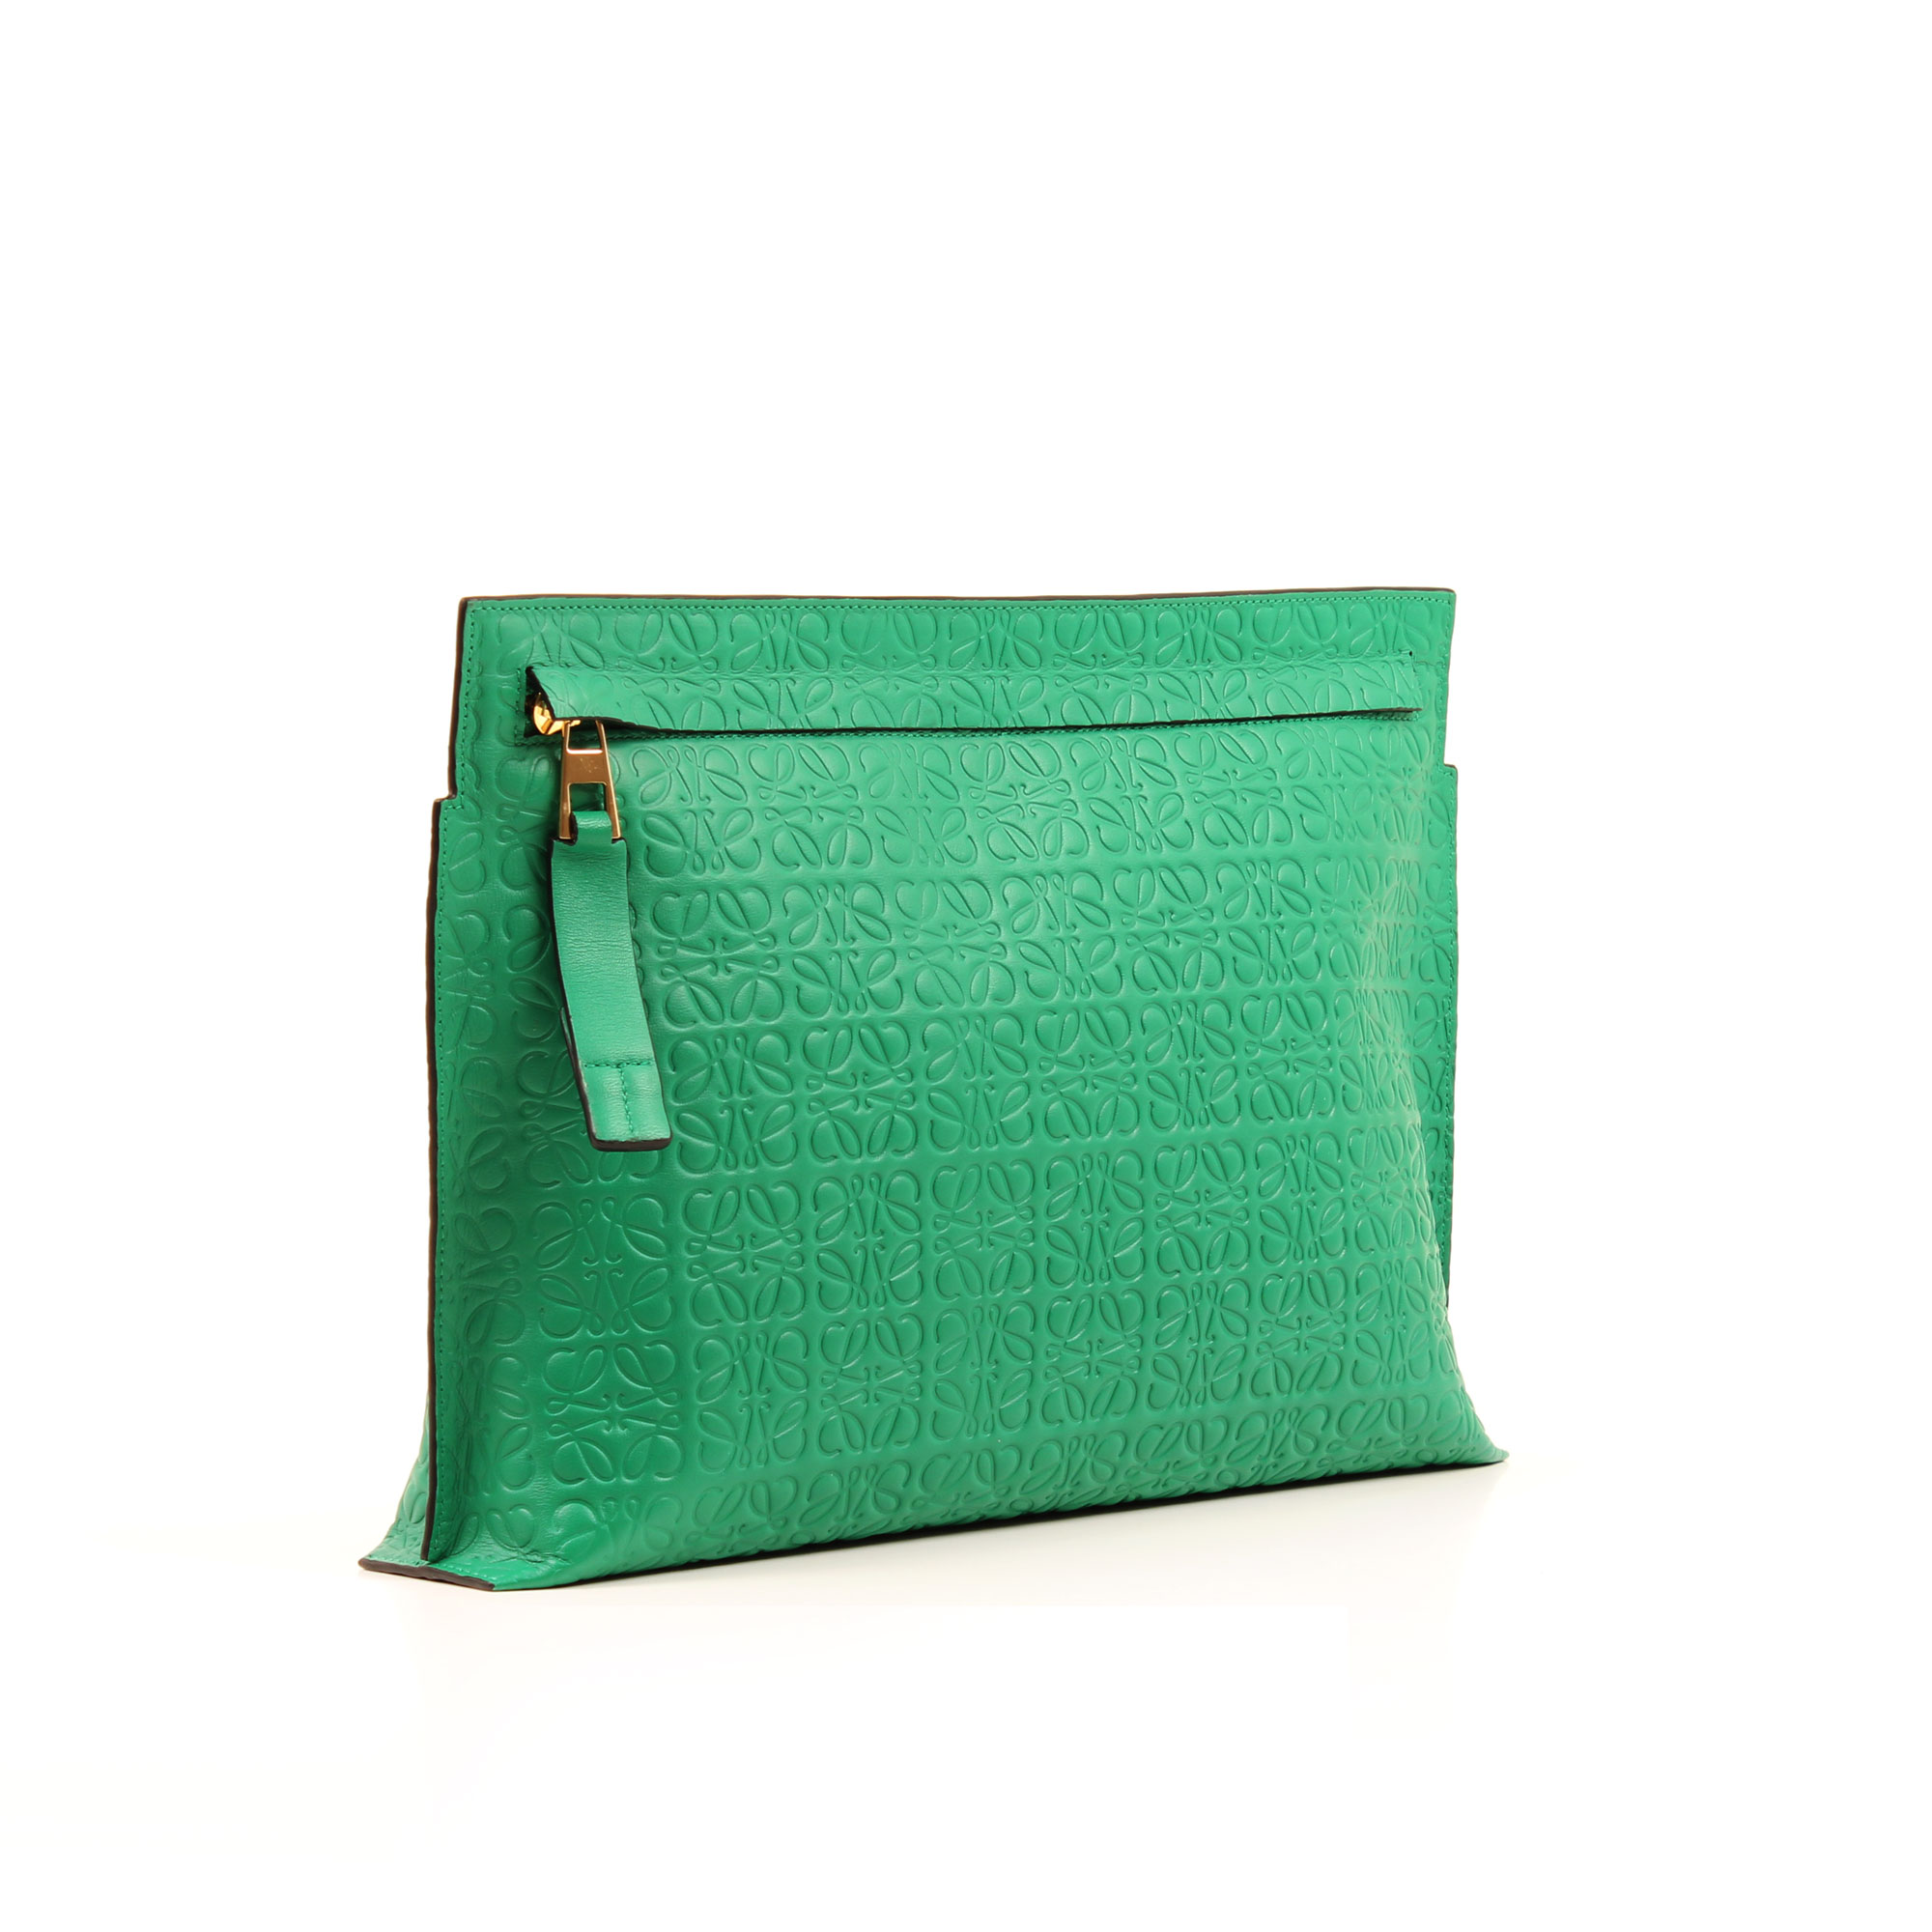 General image of loewe t pouch green embossed clutch